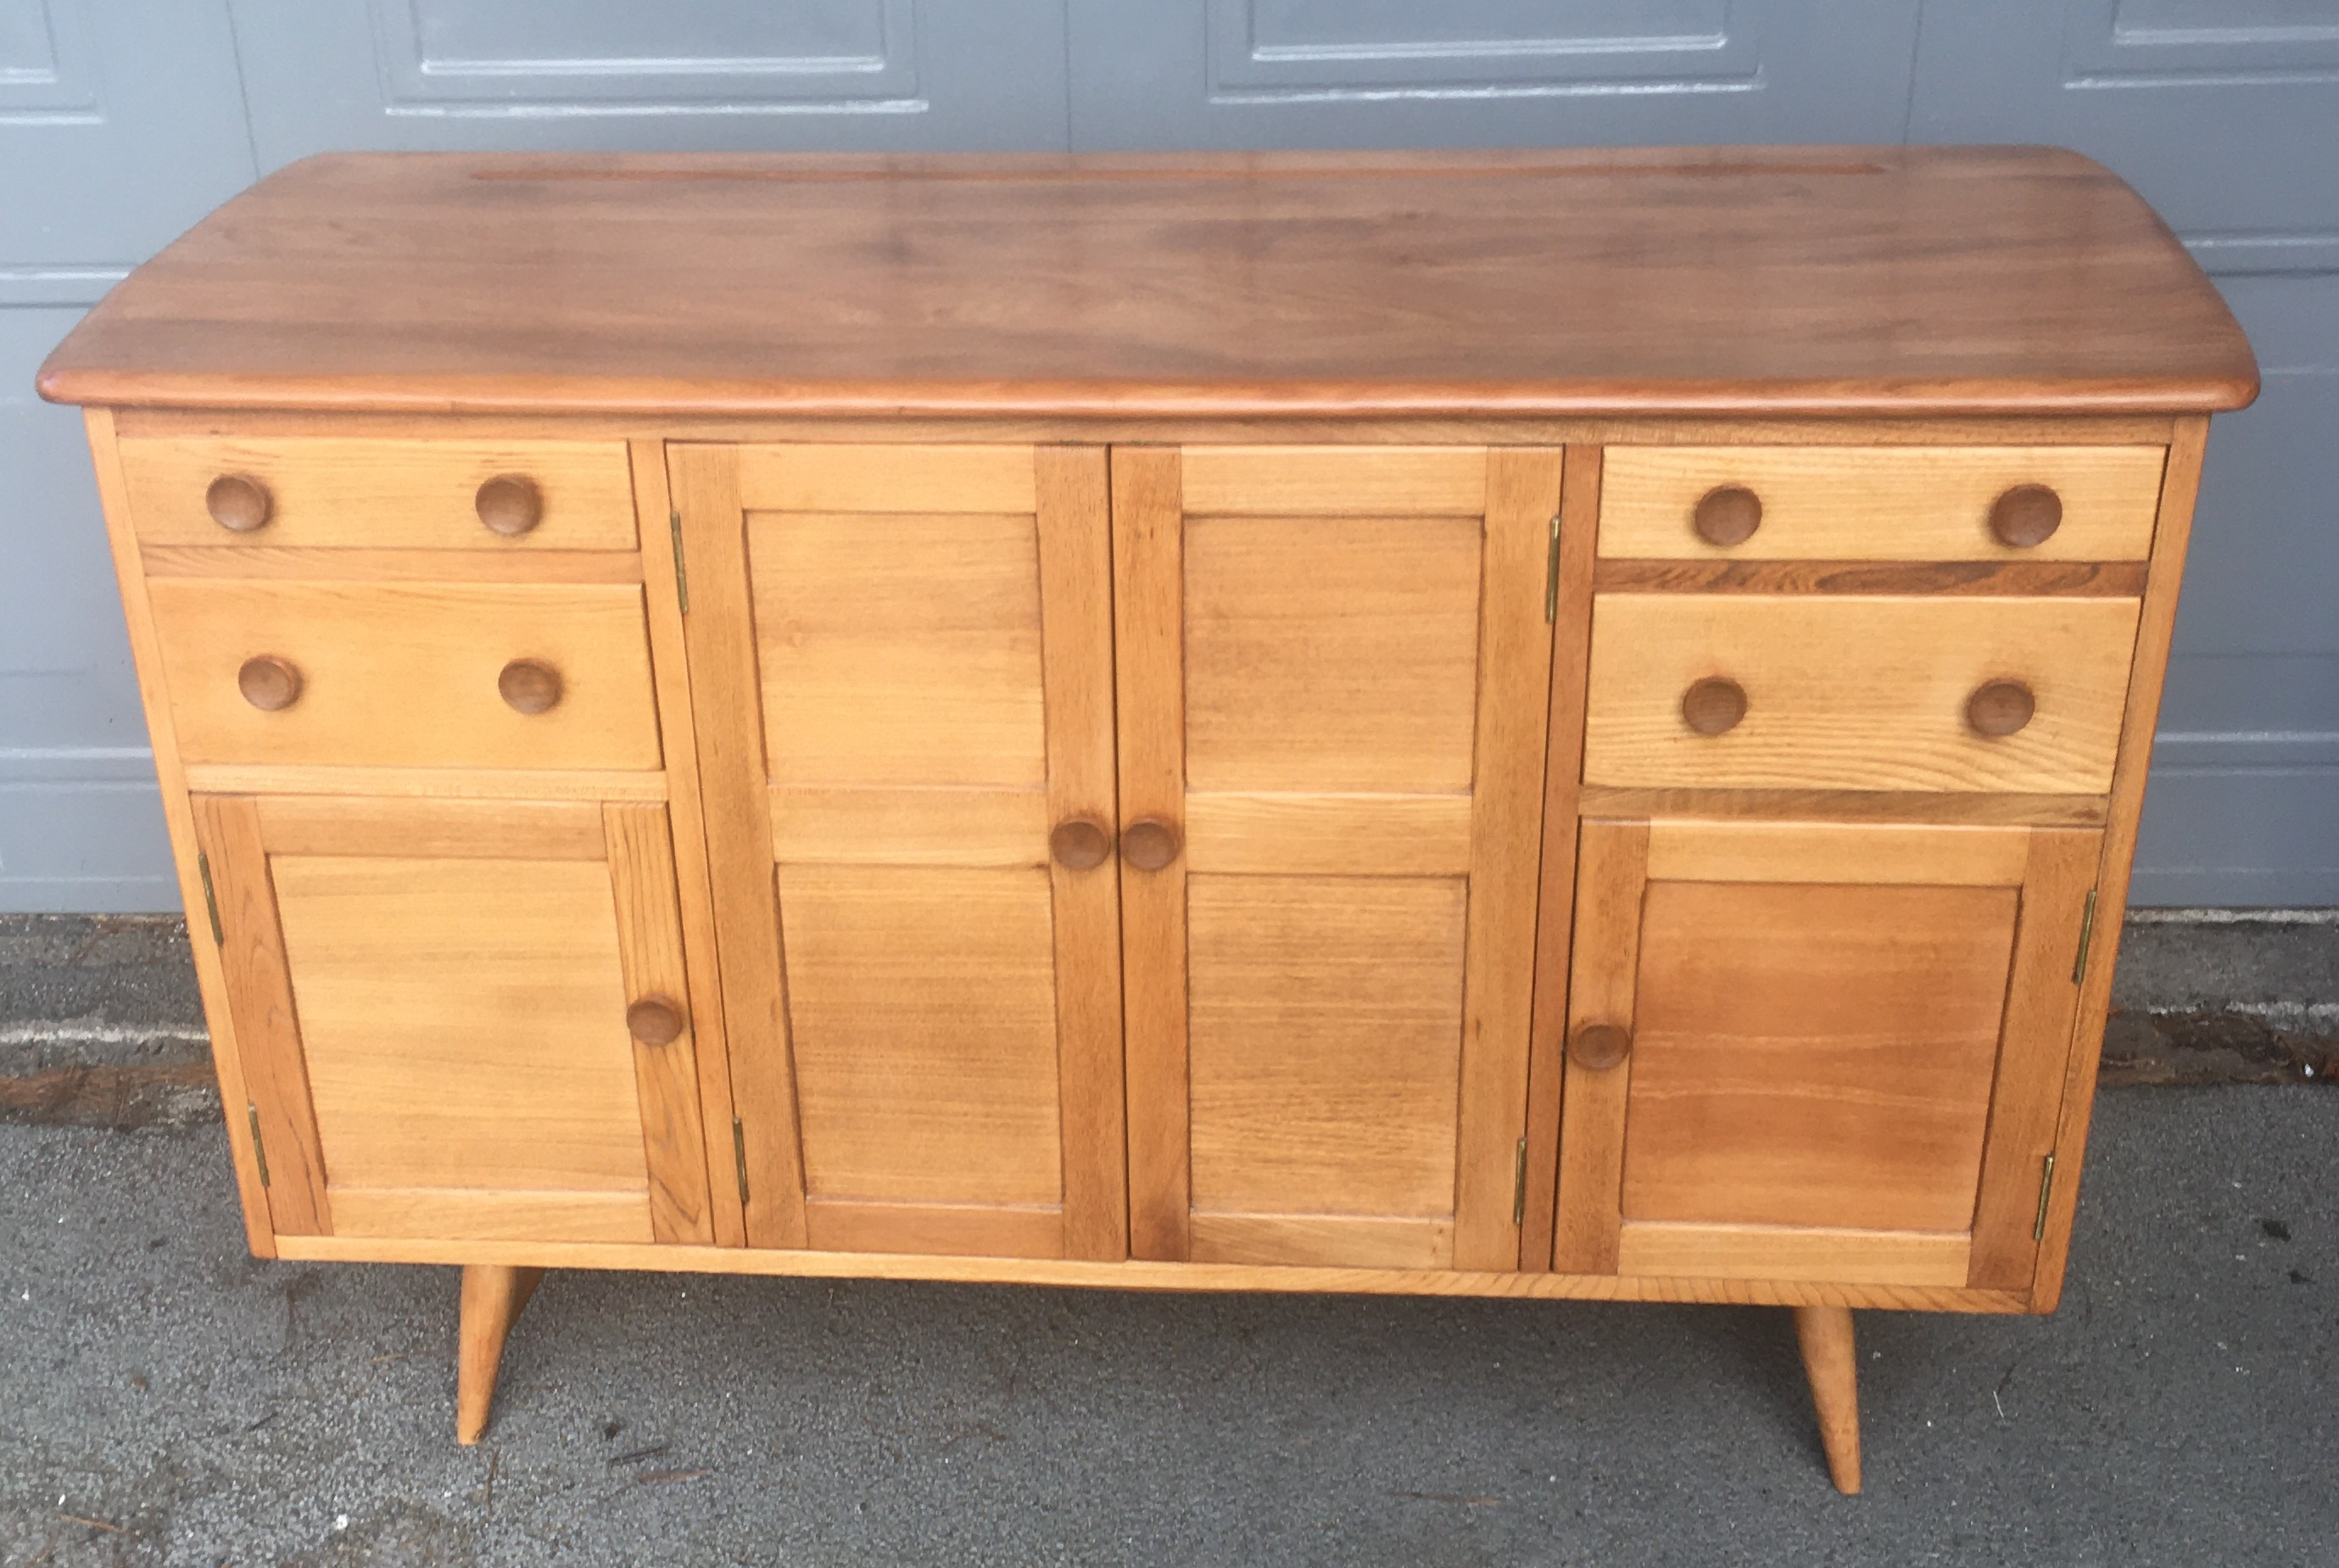 Model 328 Beech and Elm Ercol Sideboard 1956